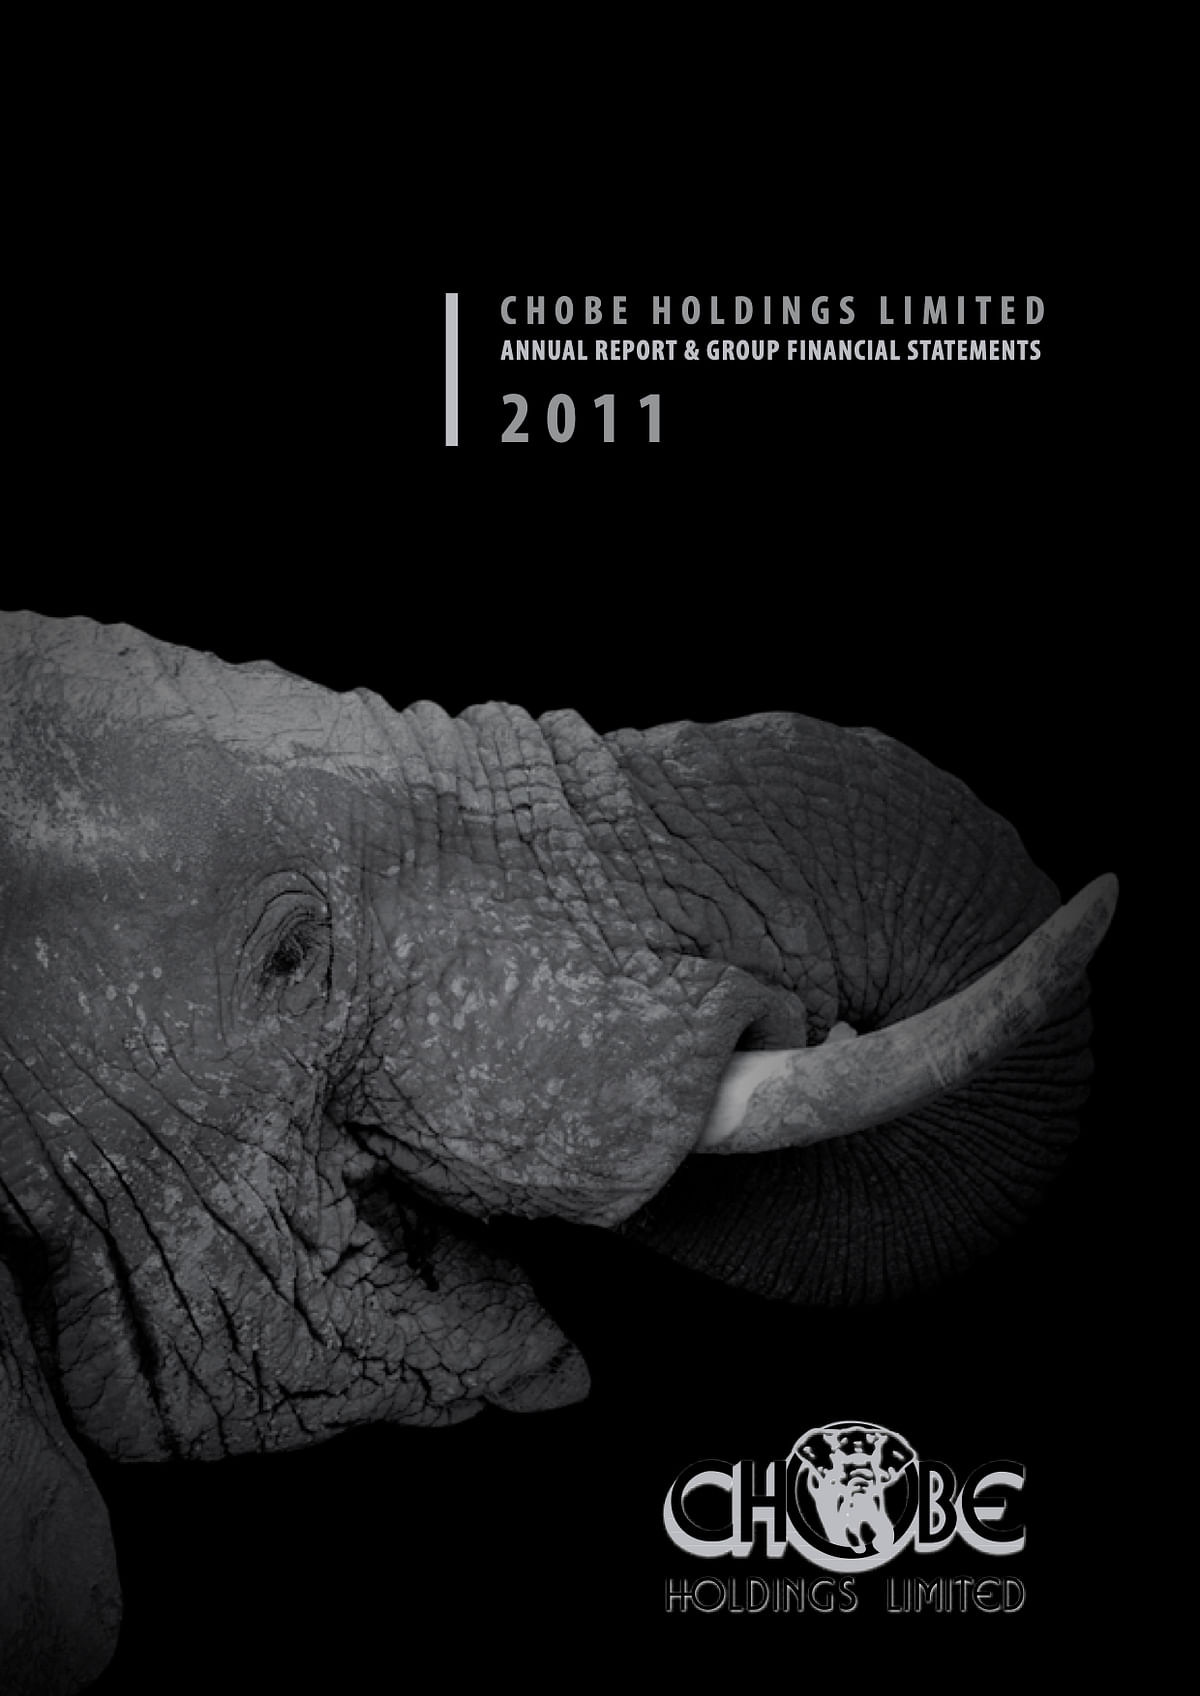 Chobe Holdings Limited Annual Reports 2011